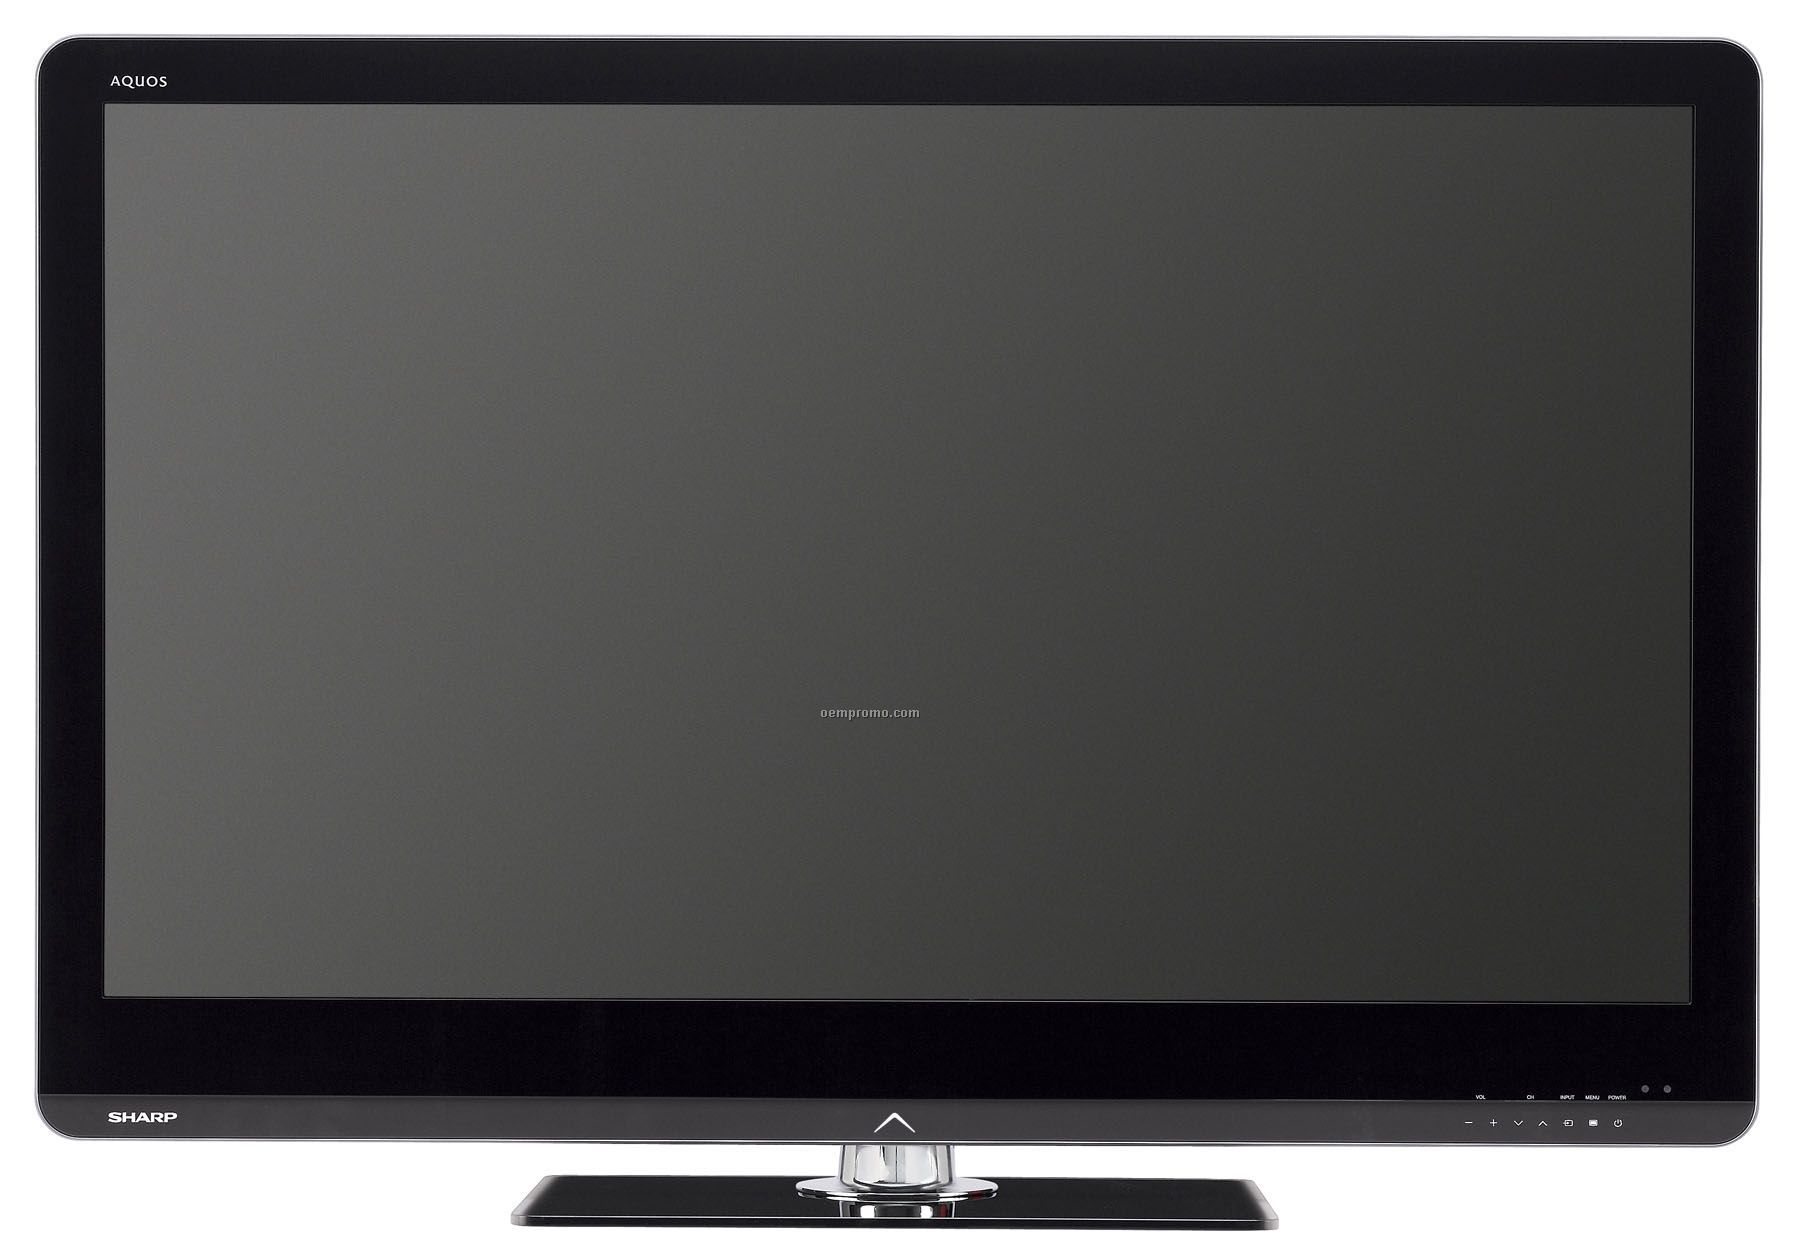 About tv led sharp sharp aquos lc 46le821e 46in led lit lcd tv